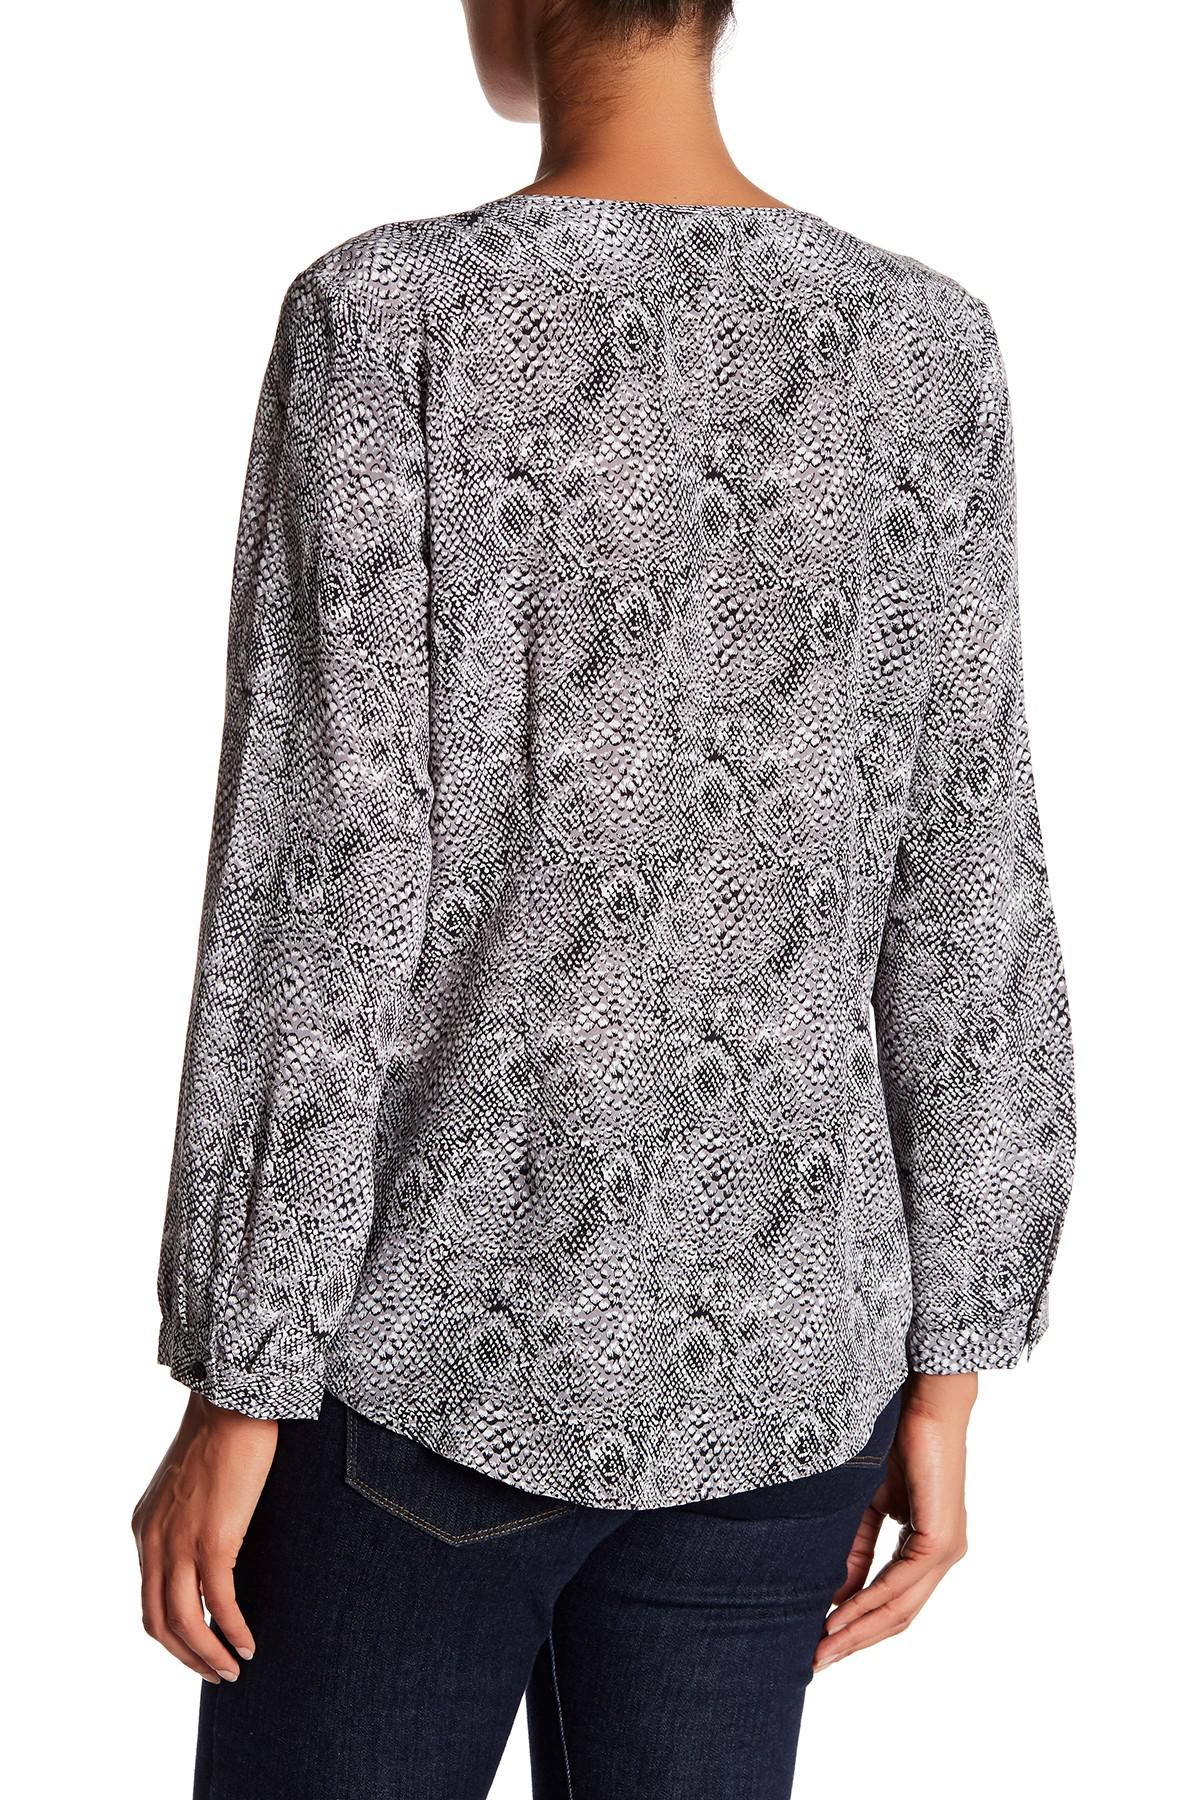 Joie Woman Purine Printed Washed-silk Top Gray Size S Joie Pictures For Sale BW9Vcz0ot